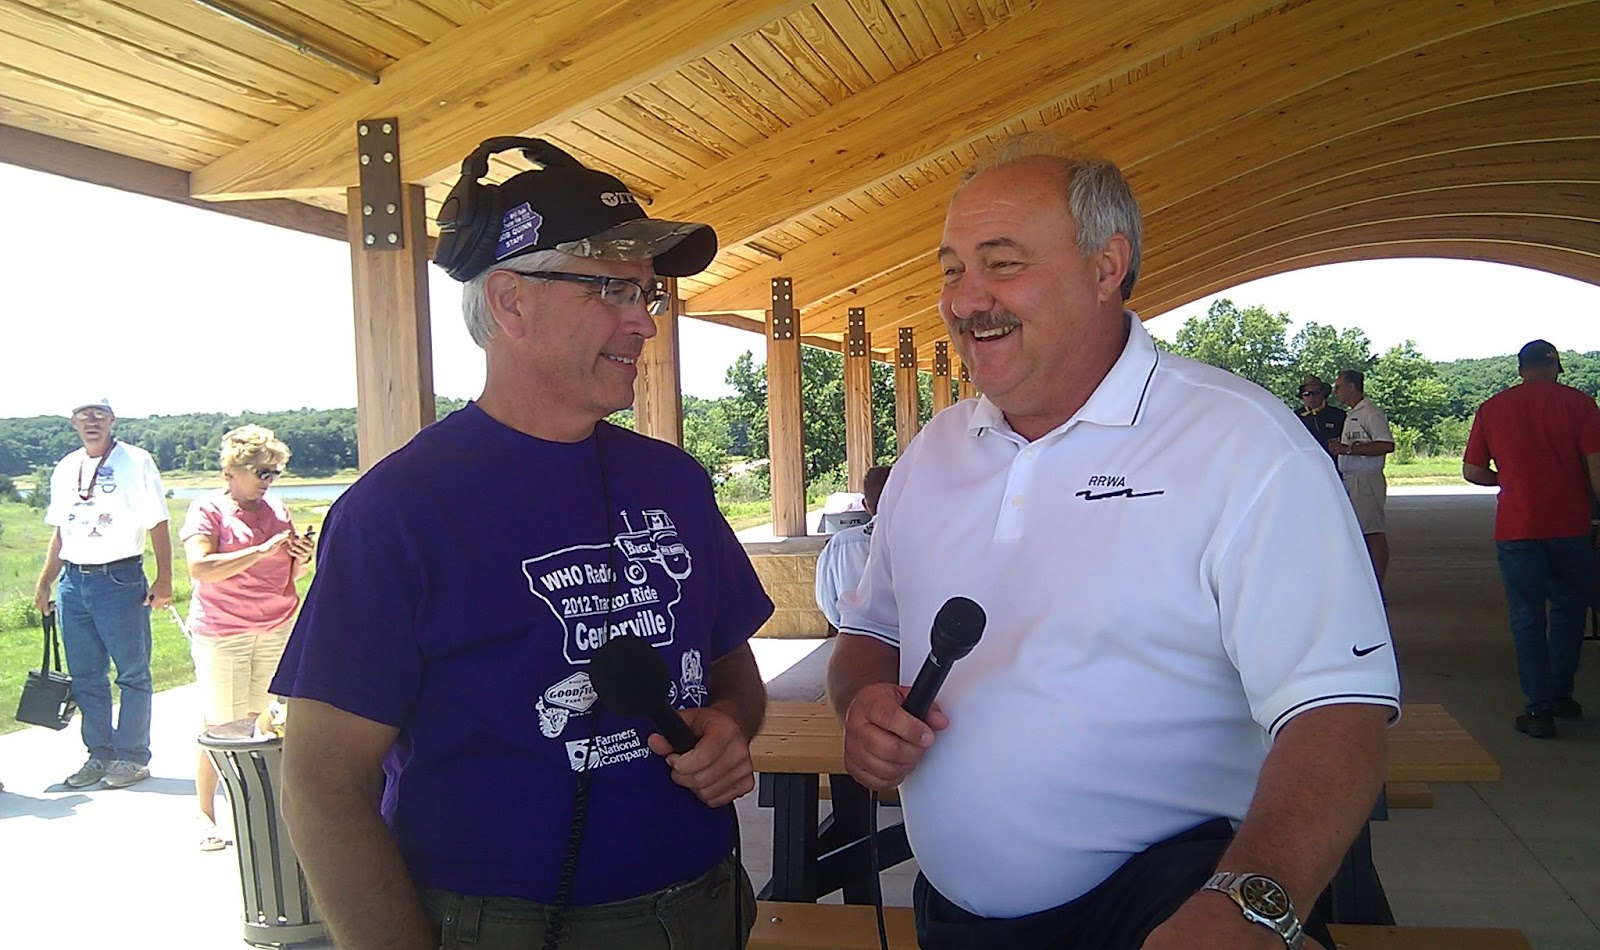 rathbun land water alliance archived activities at left who radio s bob quinn host of the big show interviews rathbun regional water association ceo and rlwa president john glenn